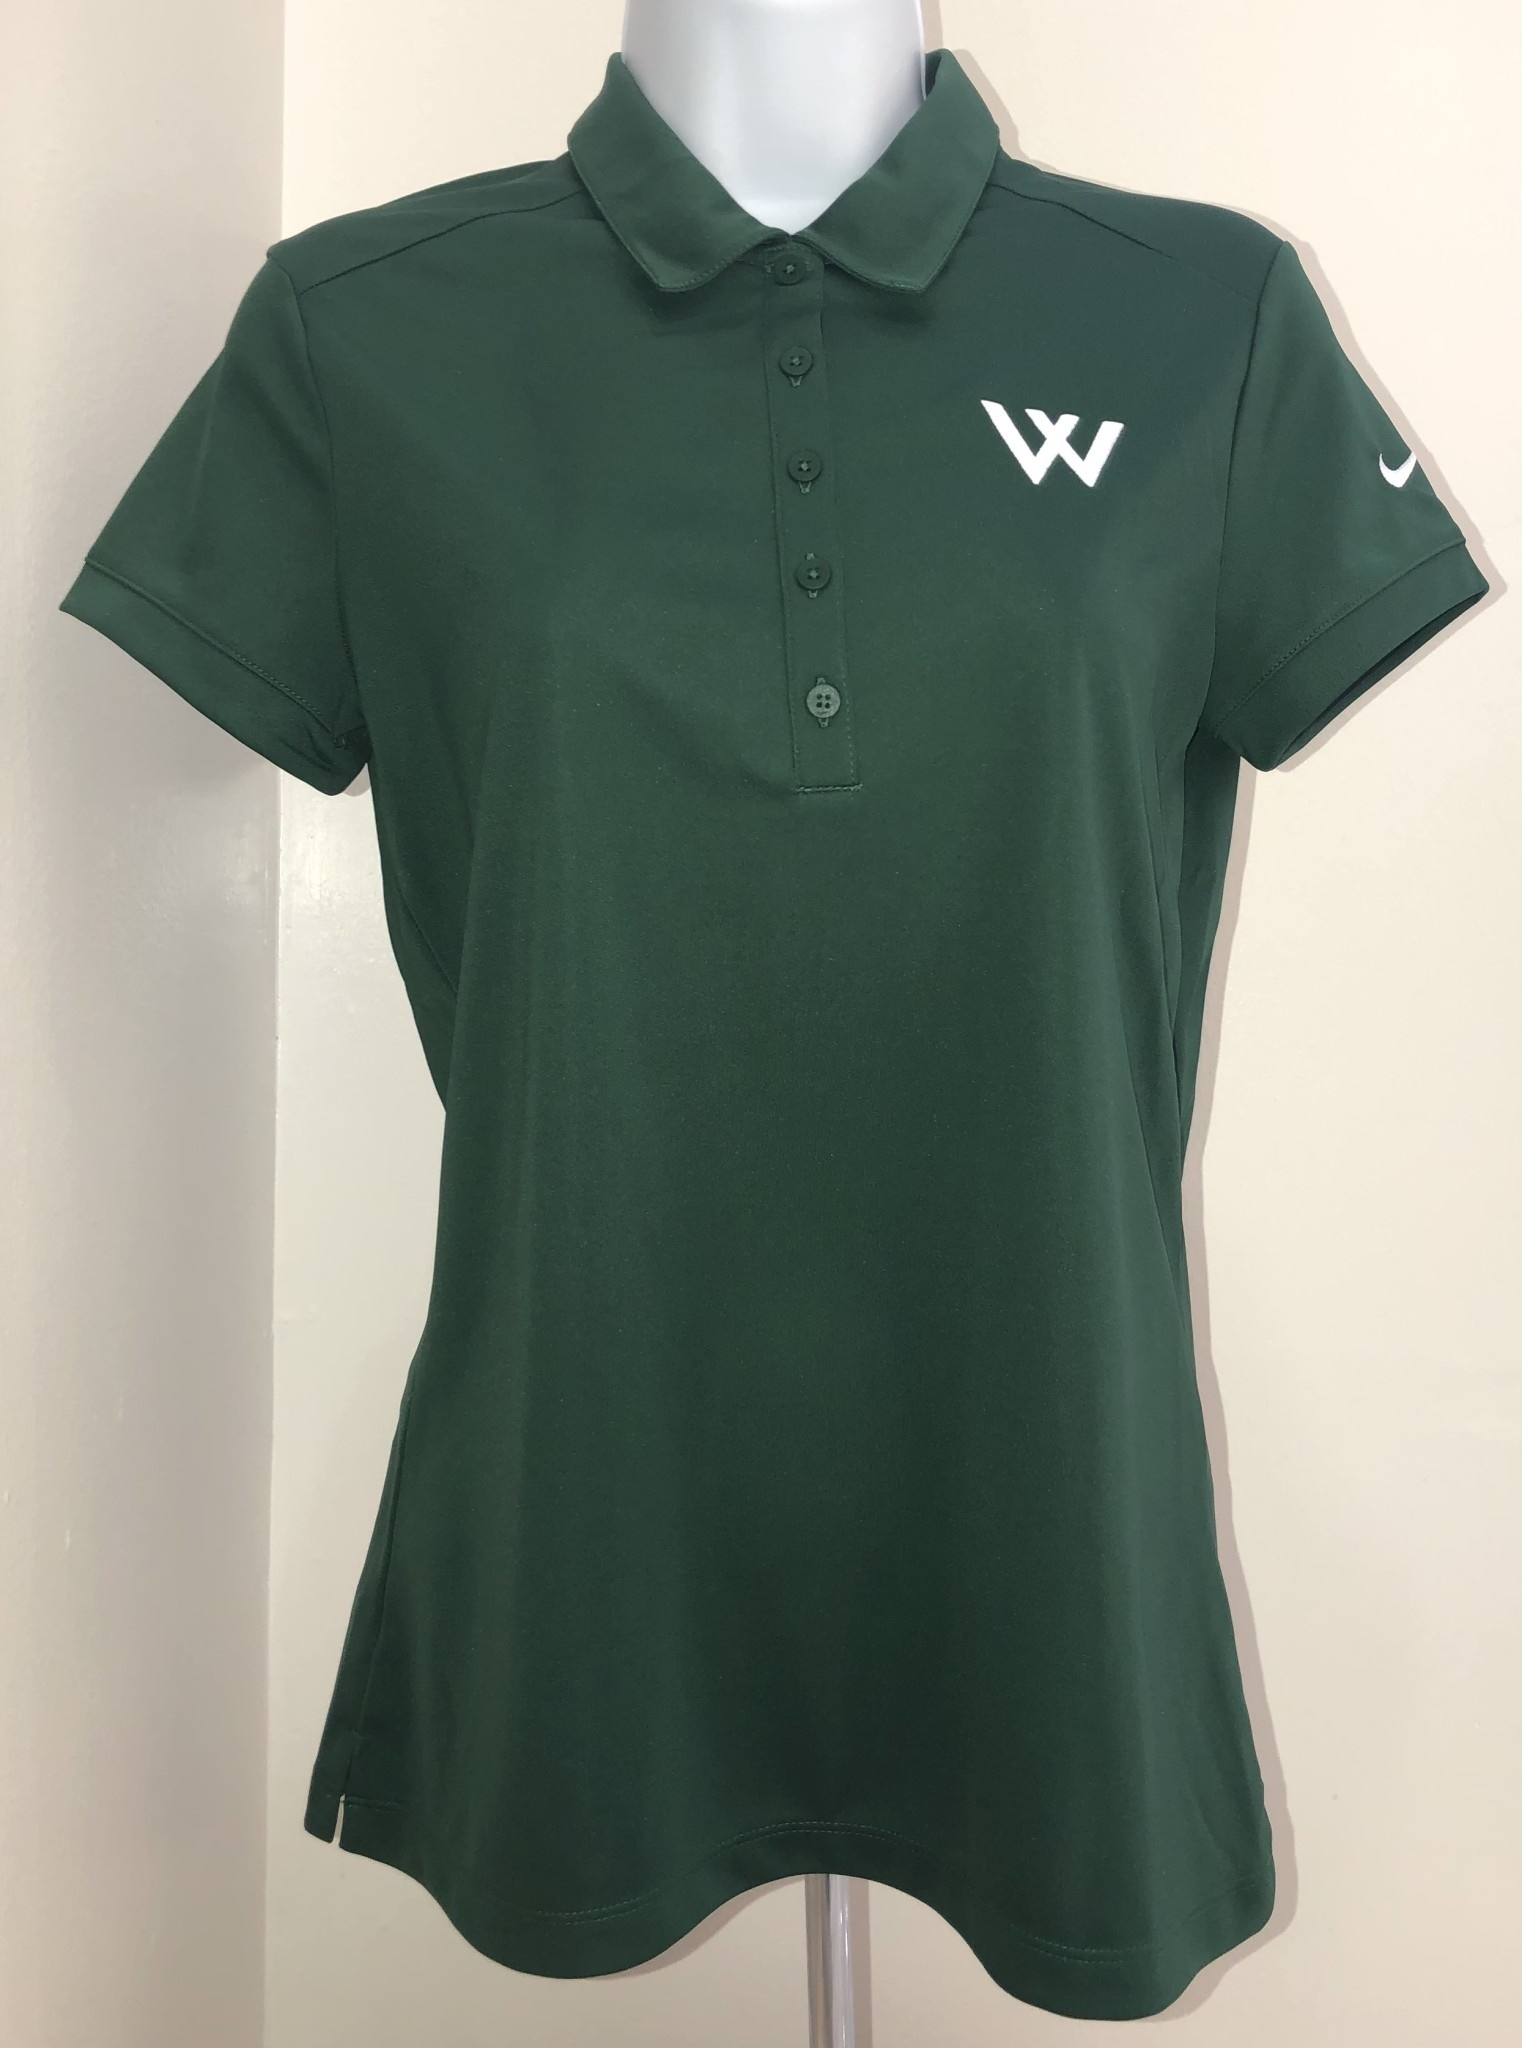 Nike Polo: Nike Women's Victory Solid Green w/White W